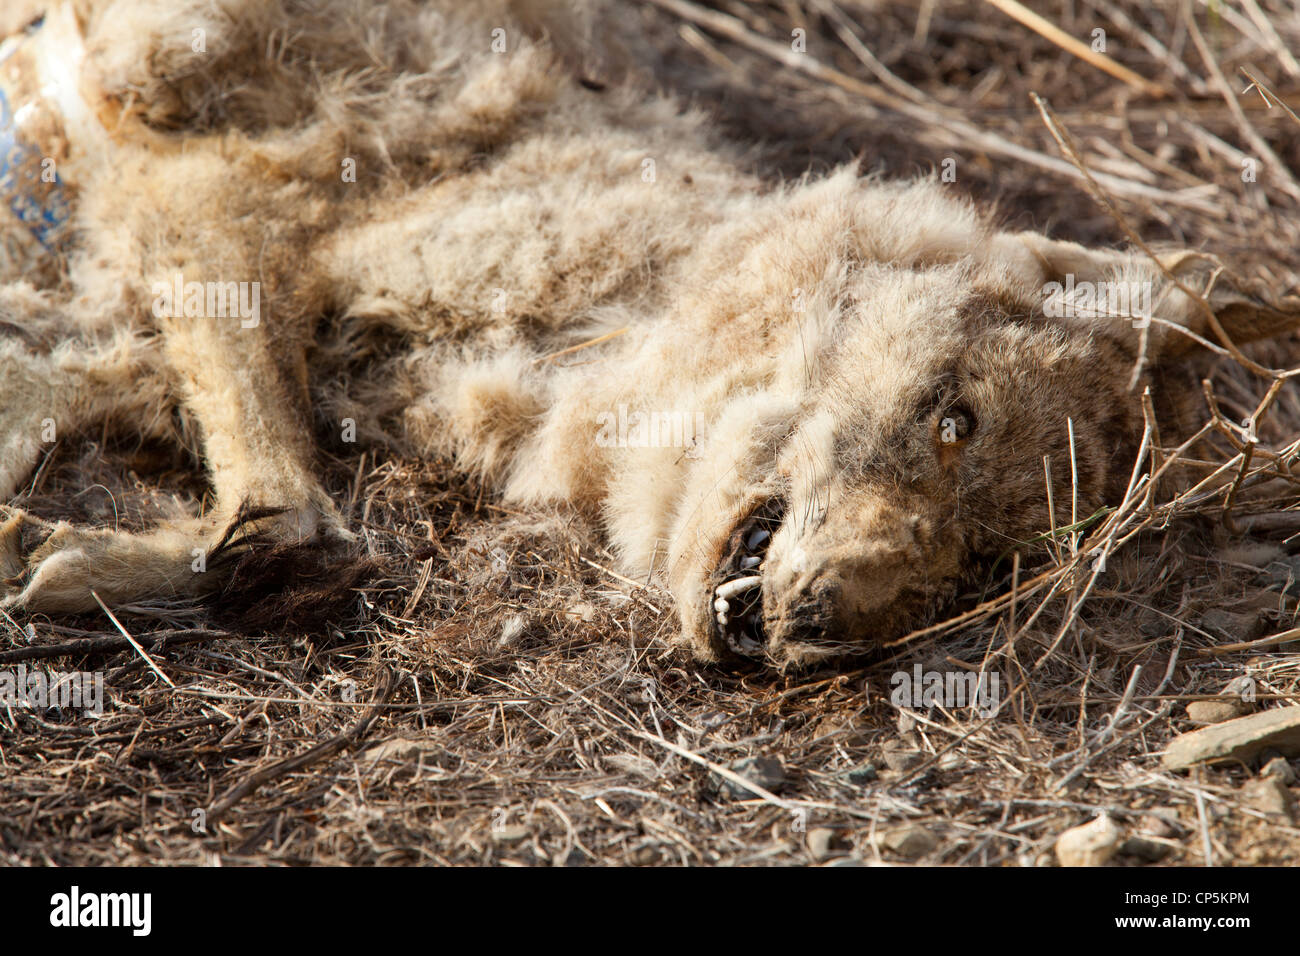 A dead, decaying body and head of a North American coyote (Canis latrans) - California USA - Stock Image